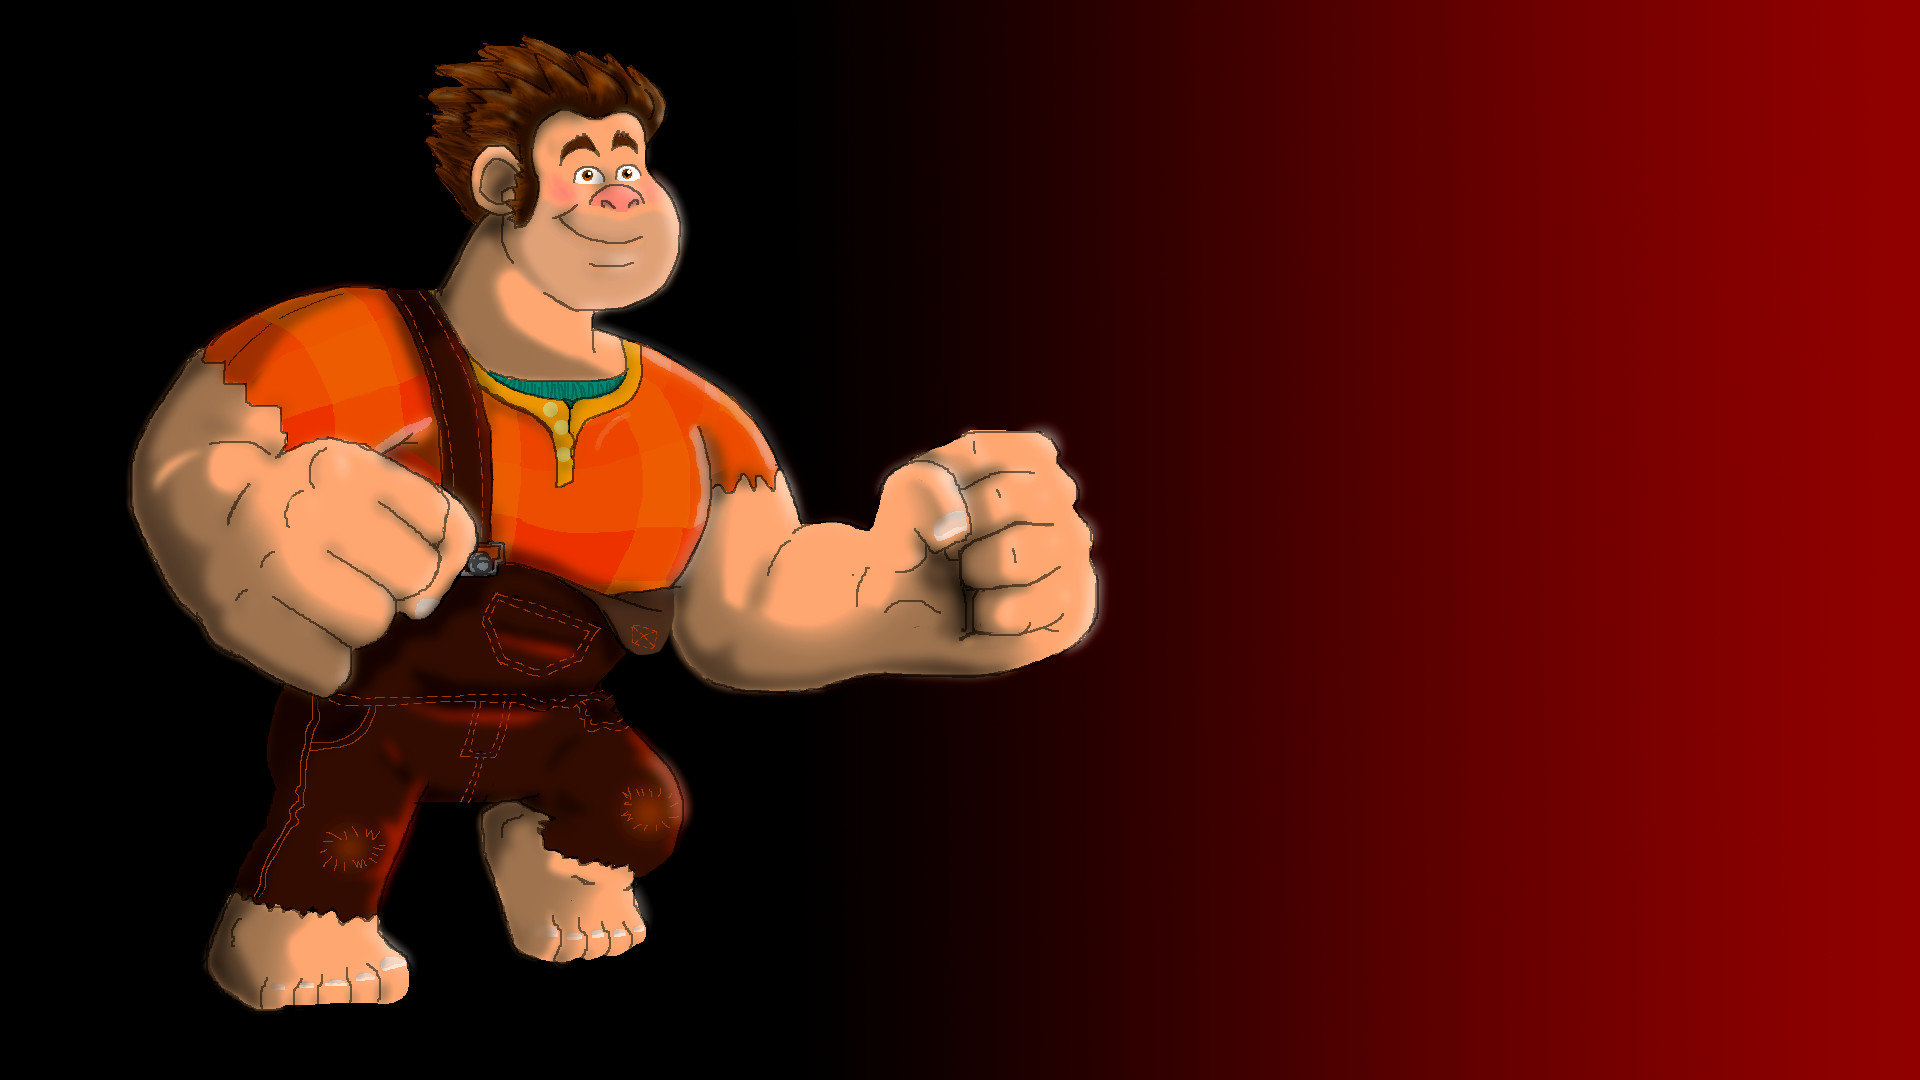 High Resolution Wreck It Ralph 1080p Wallpaper ID394962 For PC